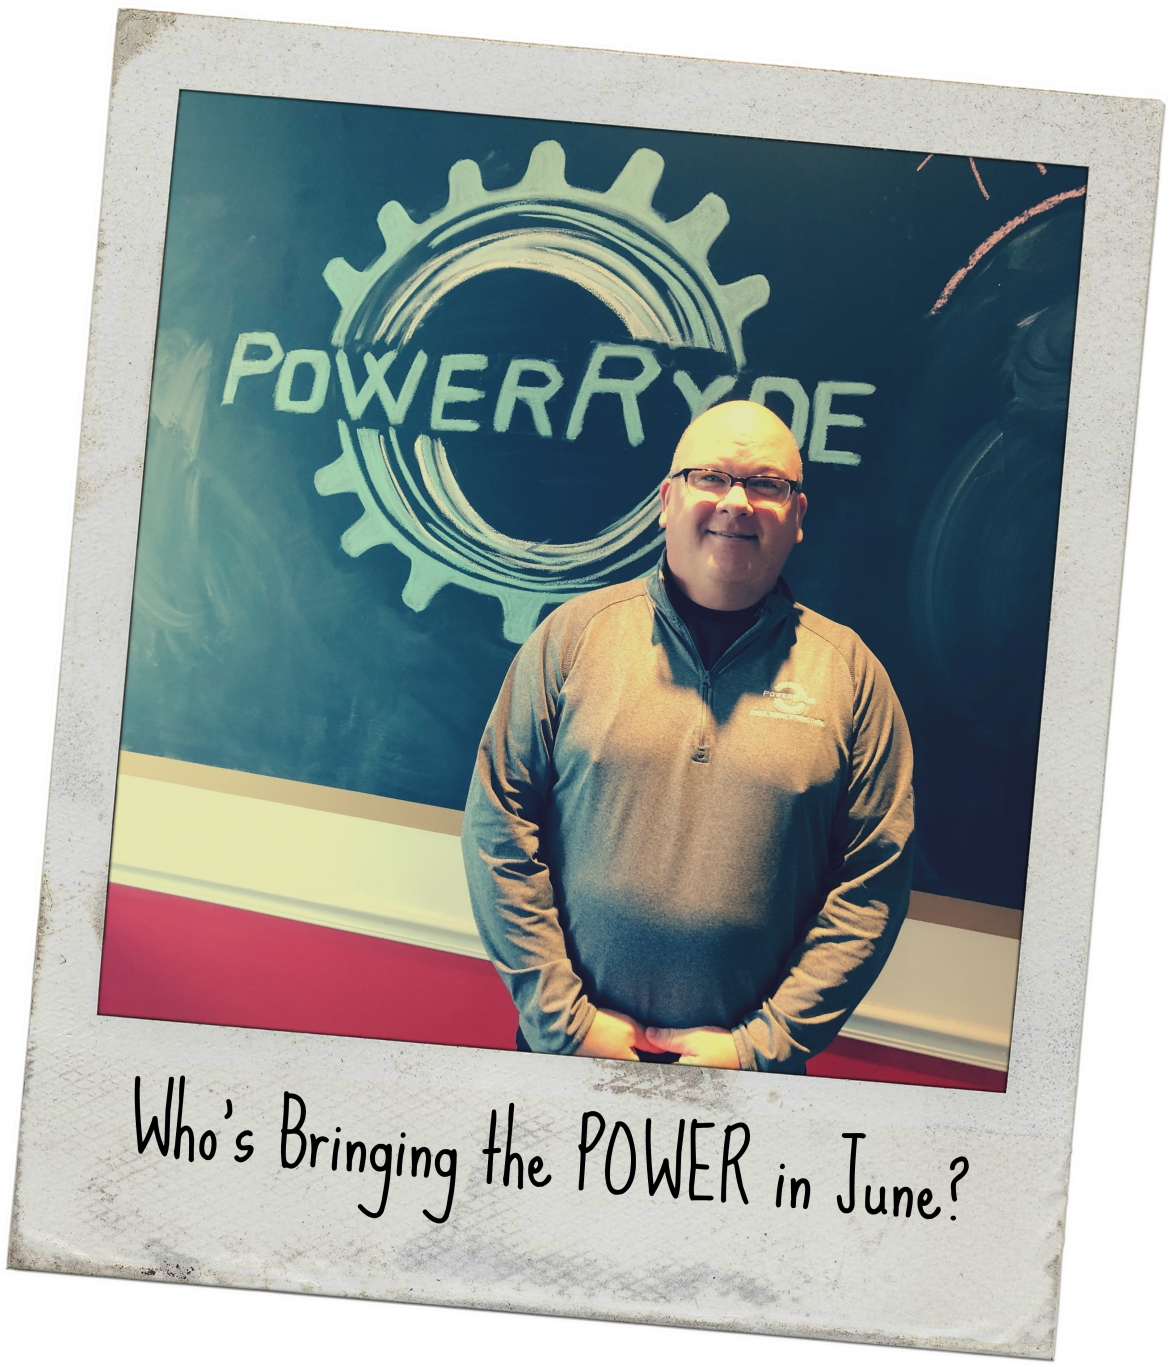 Who's Bringing the POWER in June?